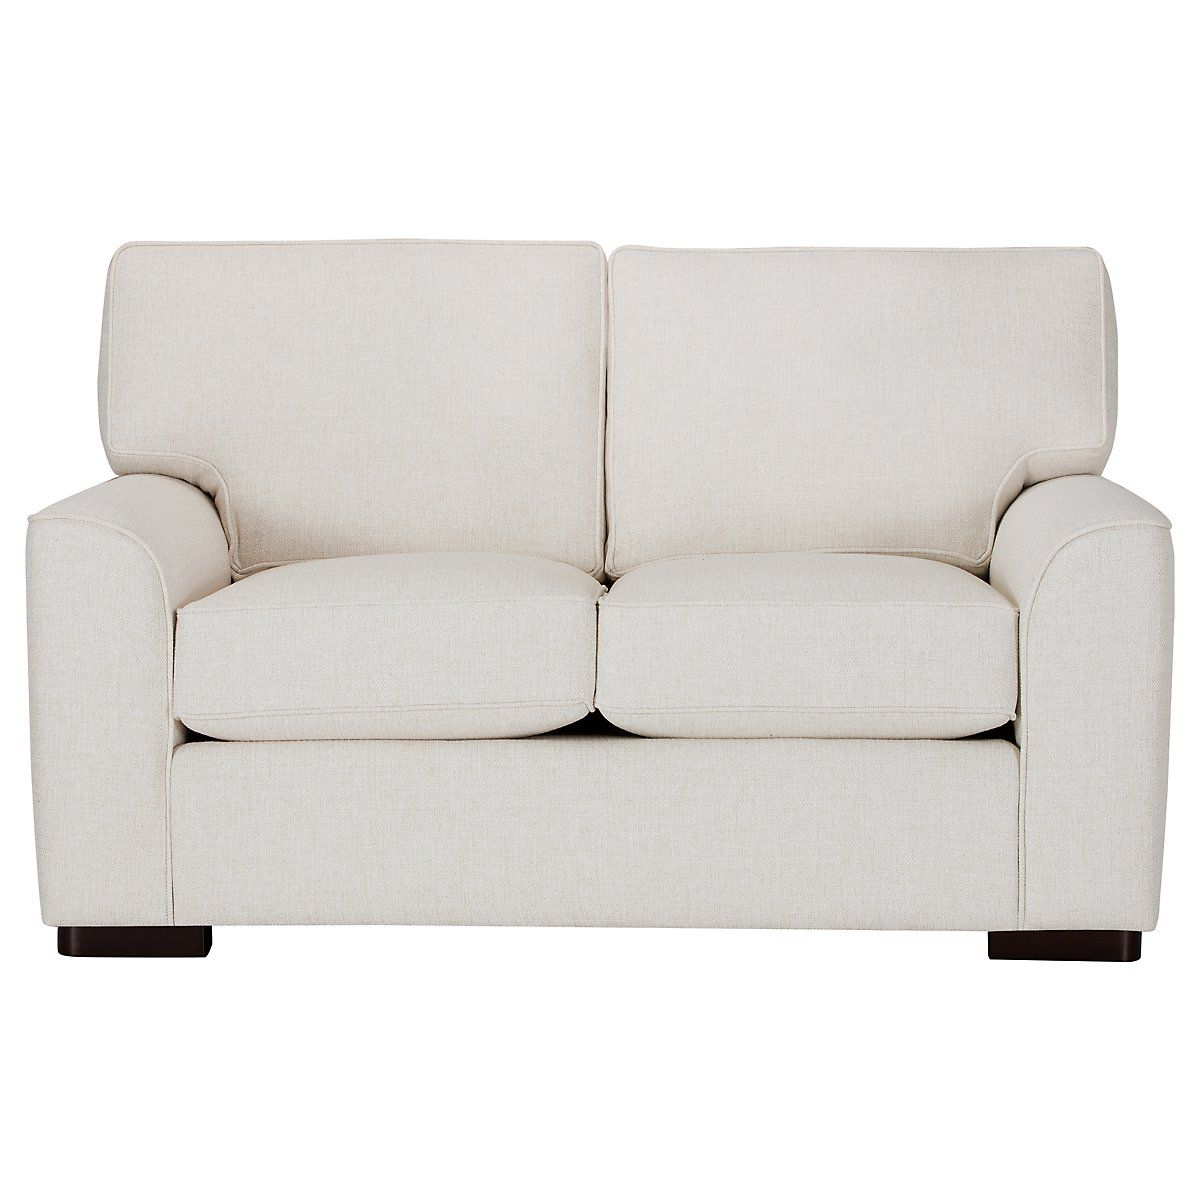 event white rentals loveseat high loveseats sofia back crystal pin dx